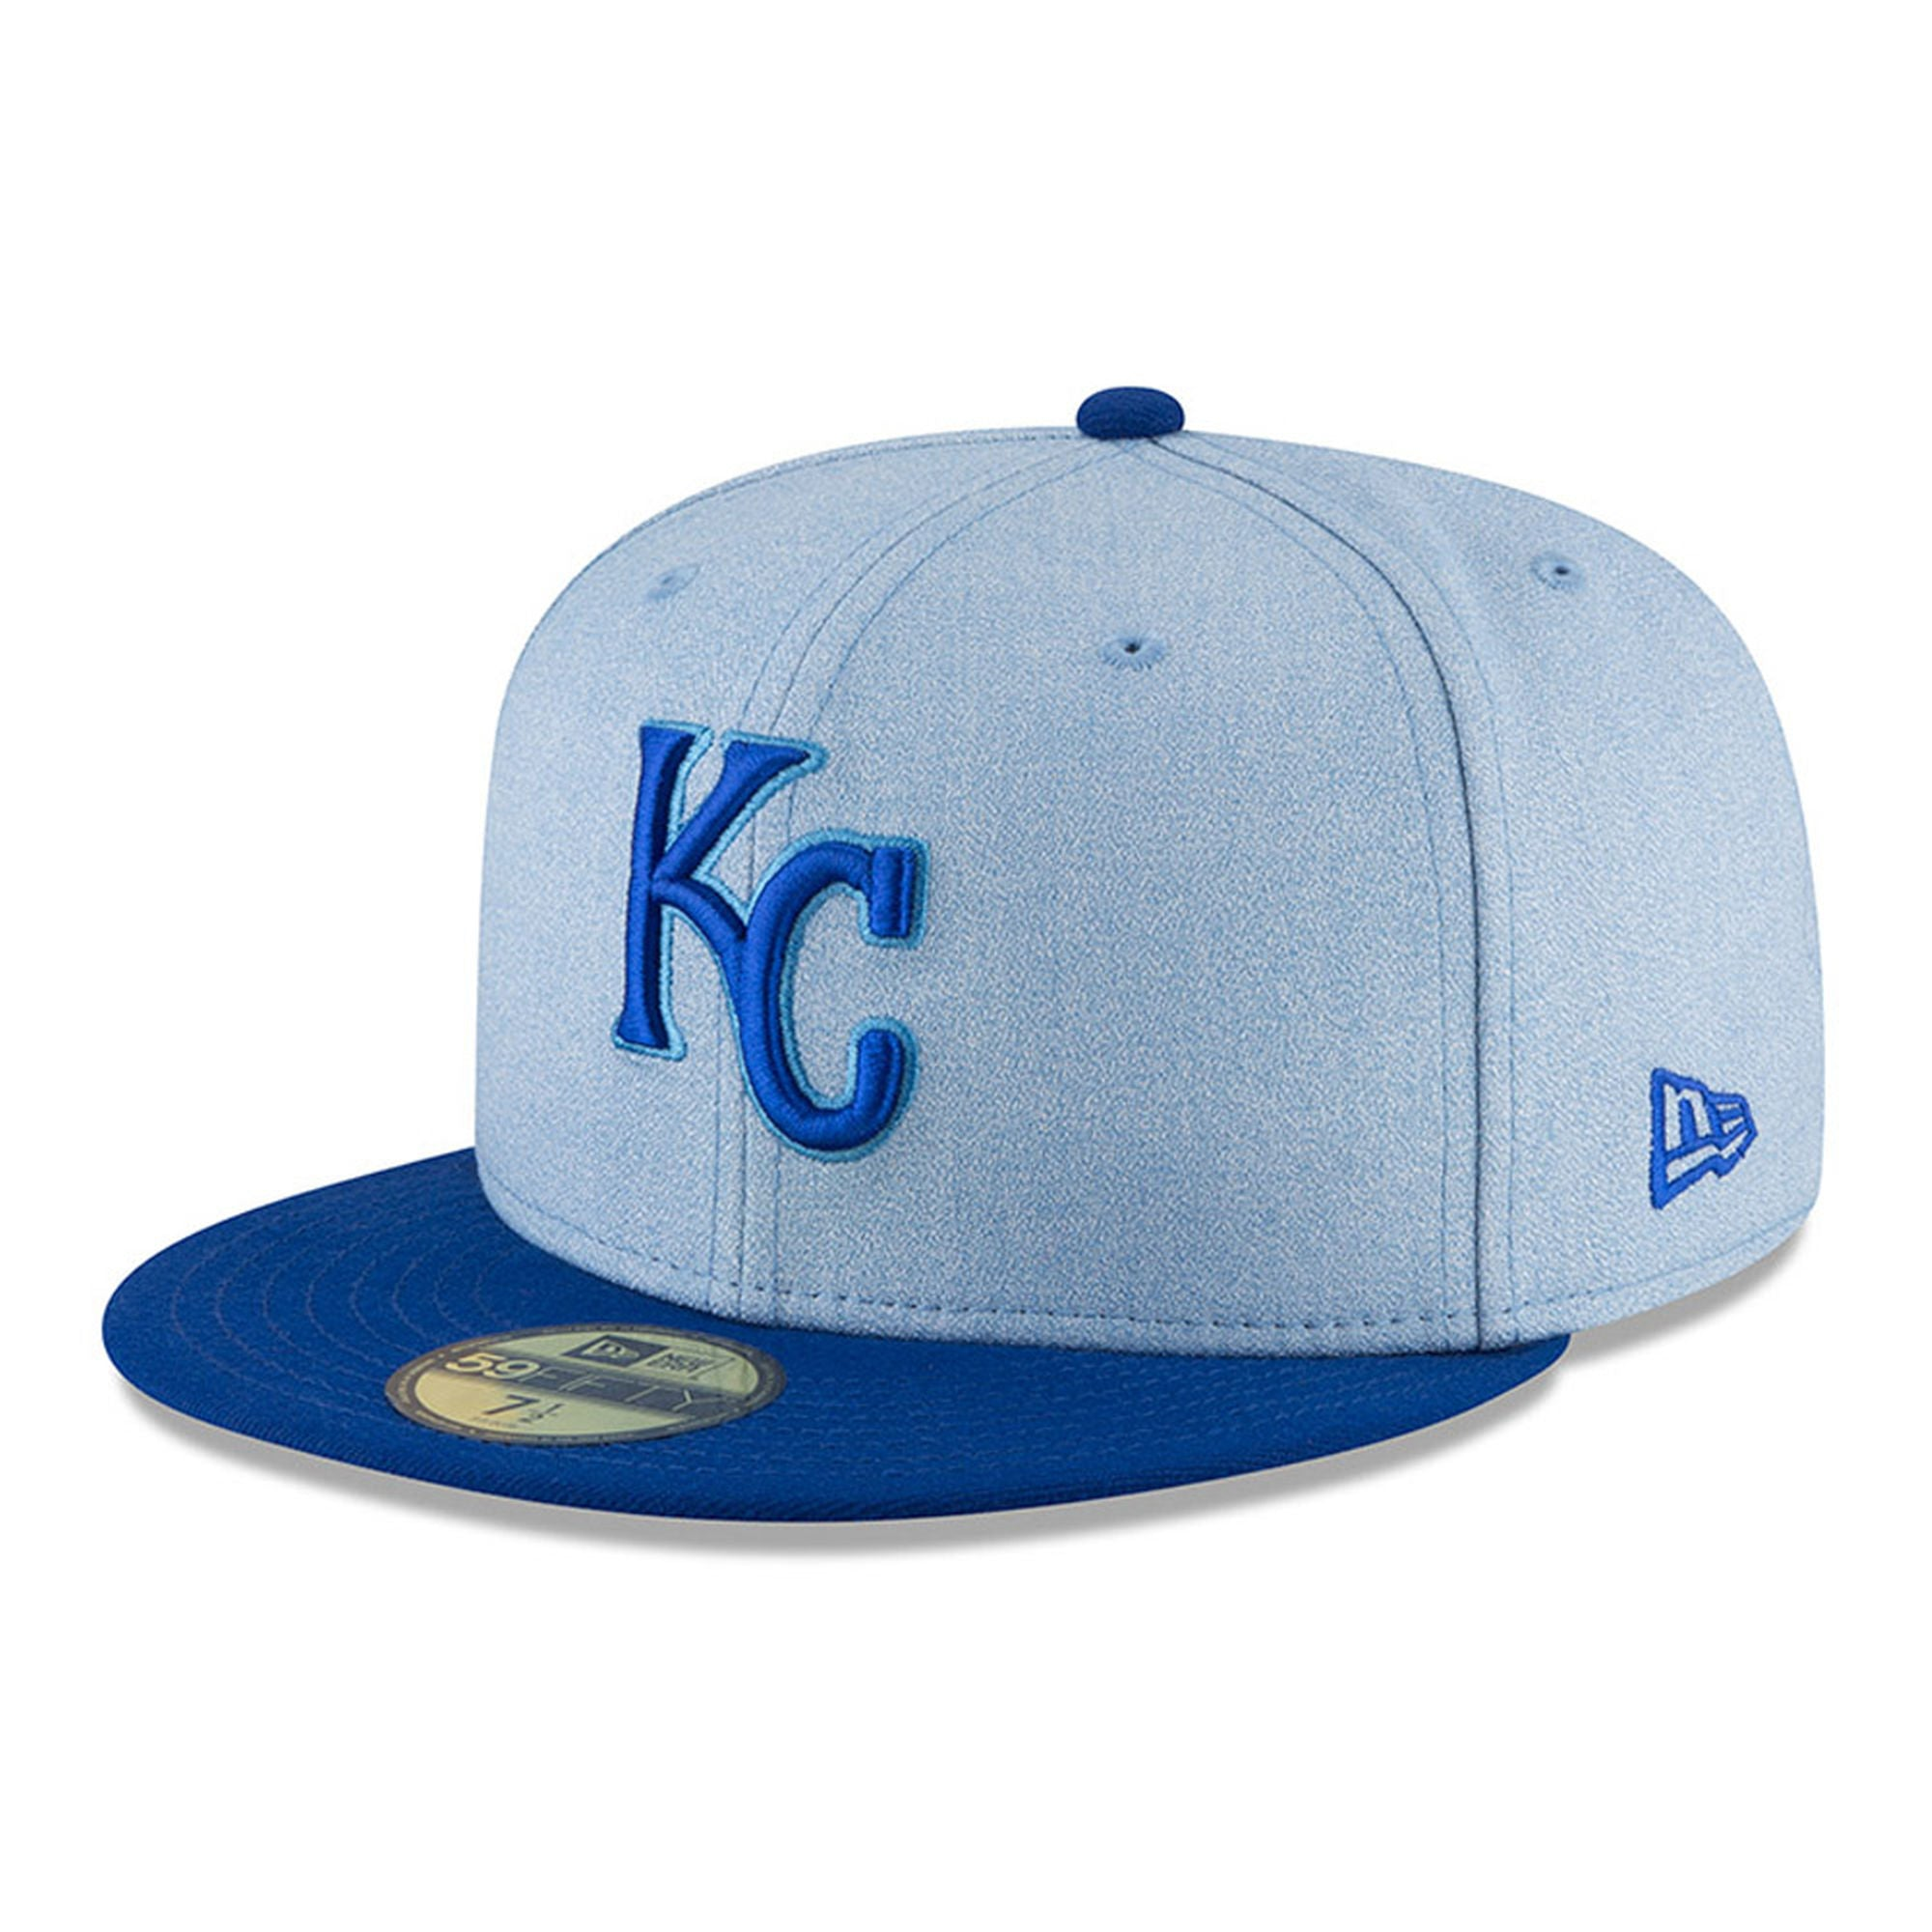 ce83e2ec Kansas City Royals Fathers Day 59FIFTY Fitted Hat by New Era